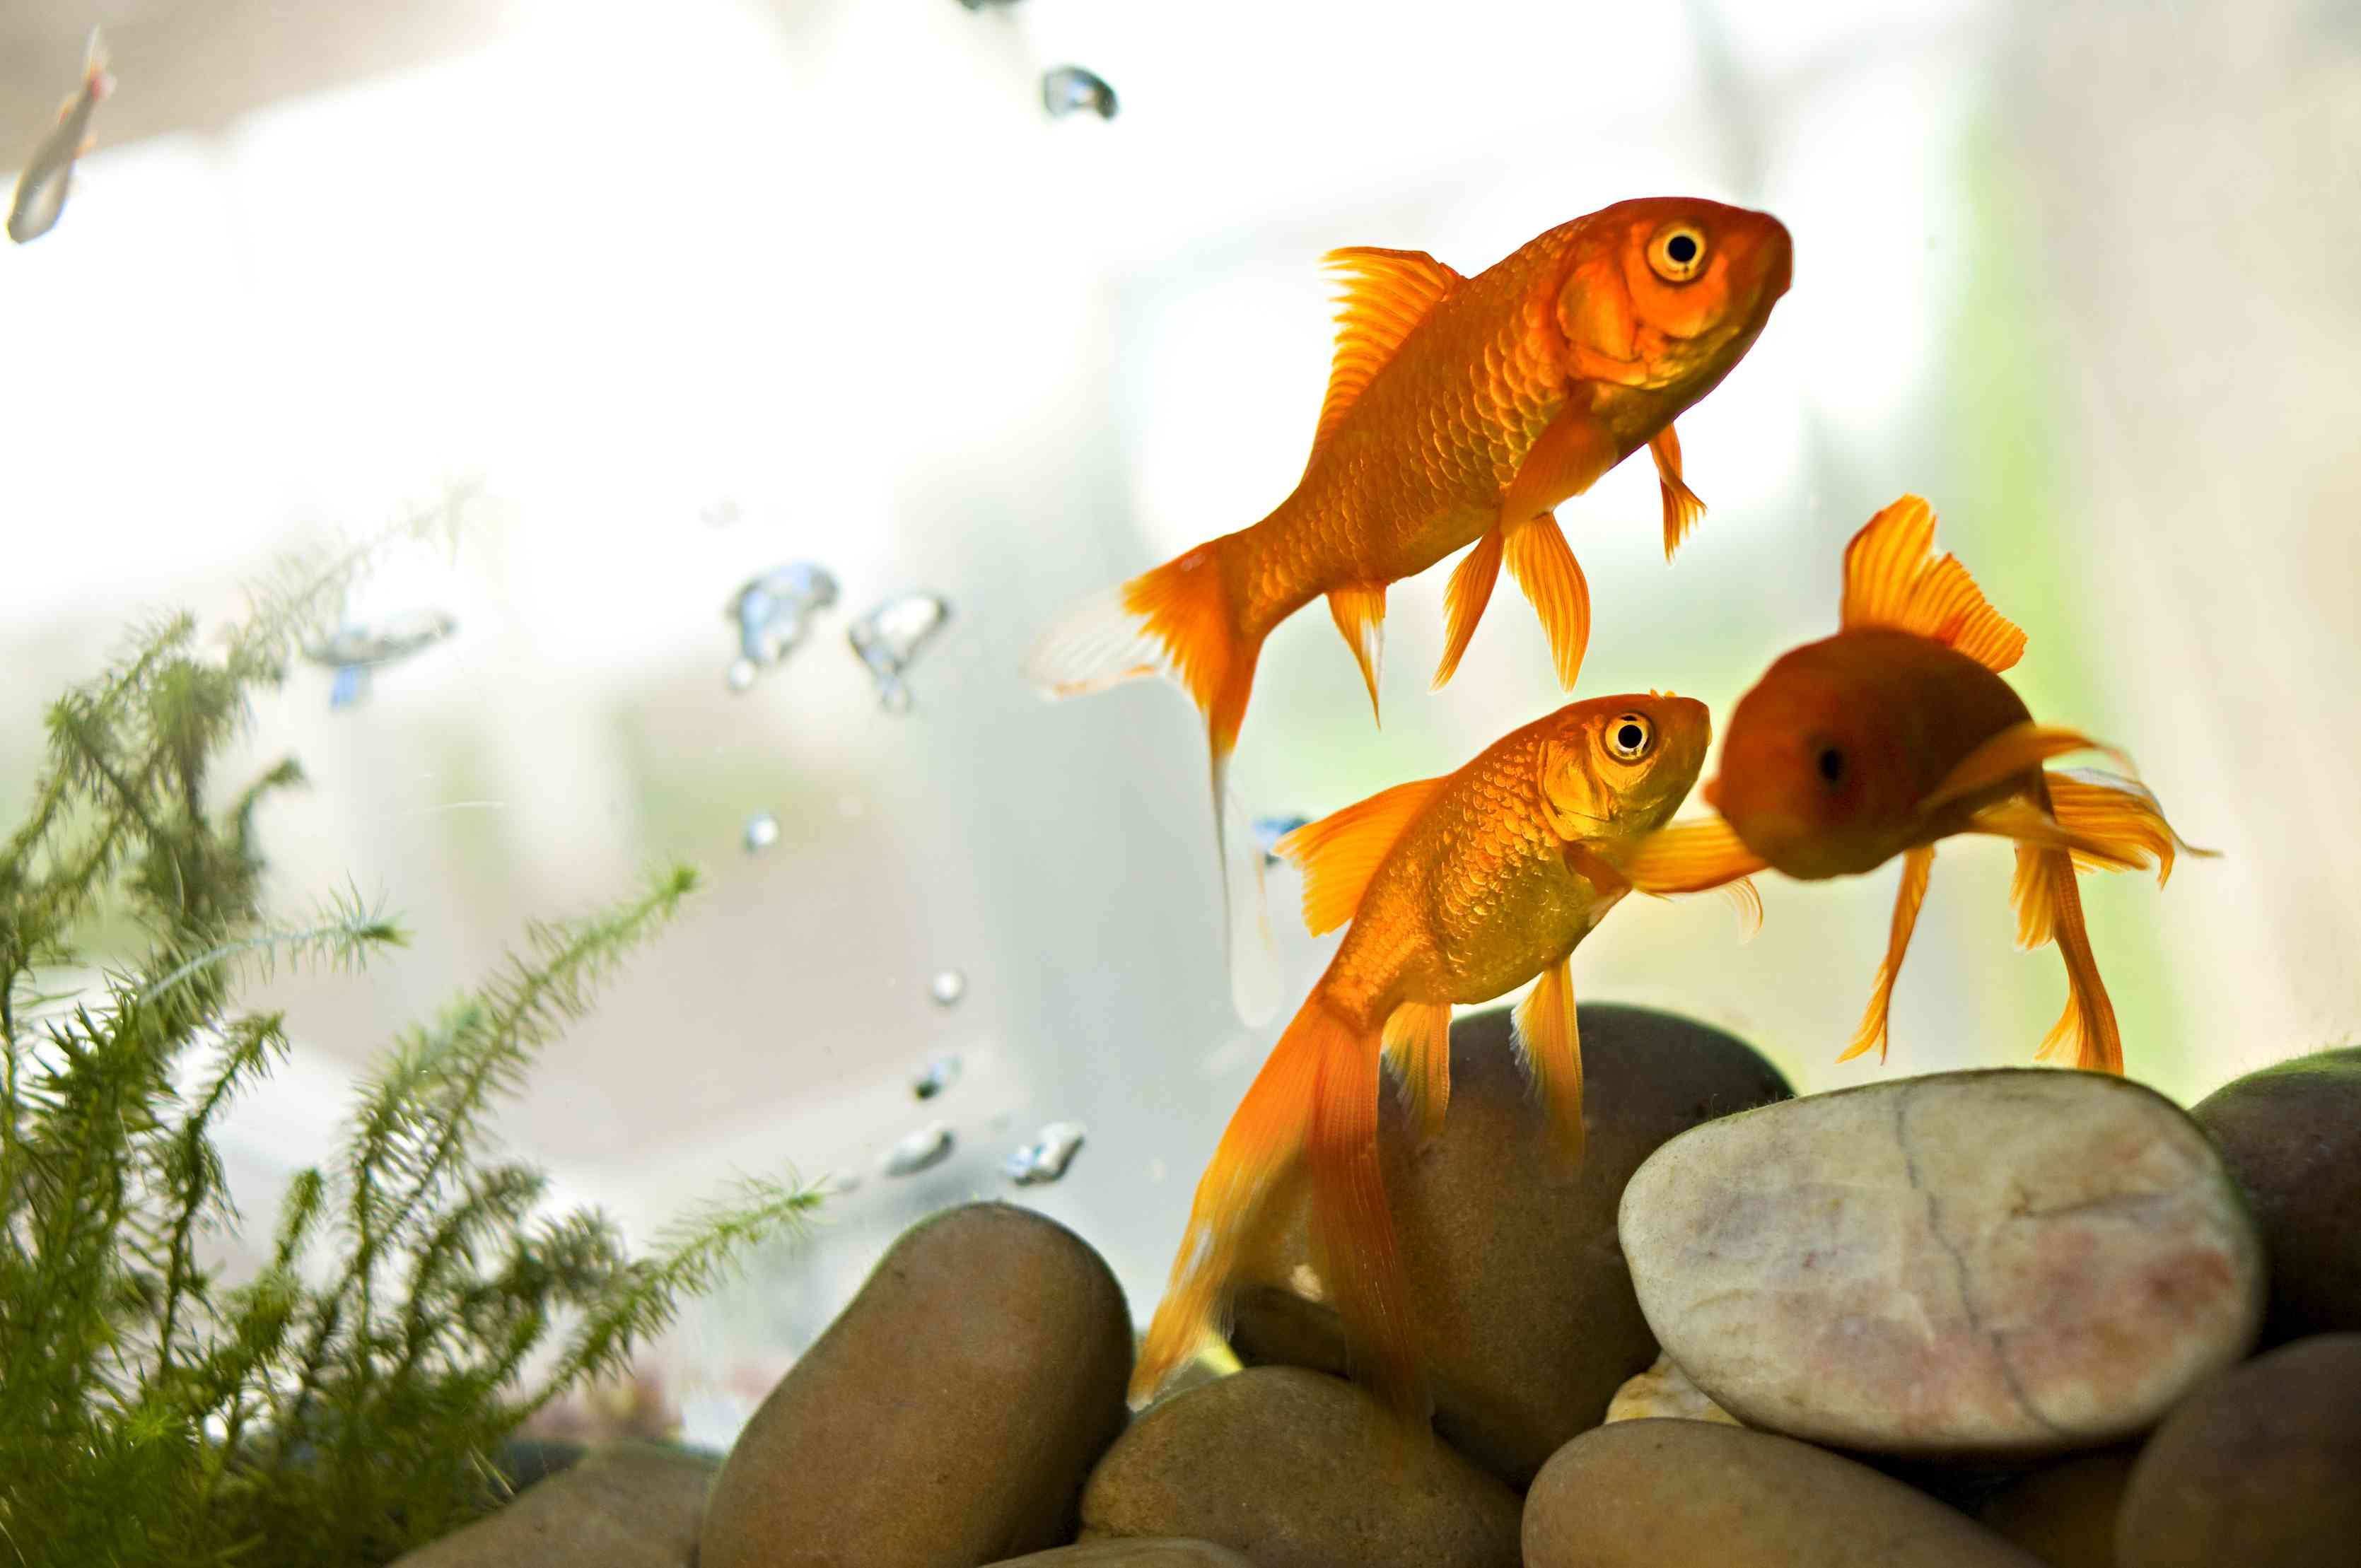 goldfish in a tank with some plants and large rocks